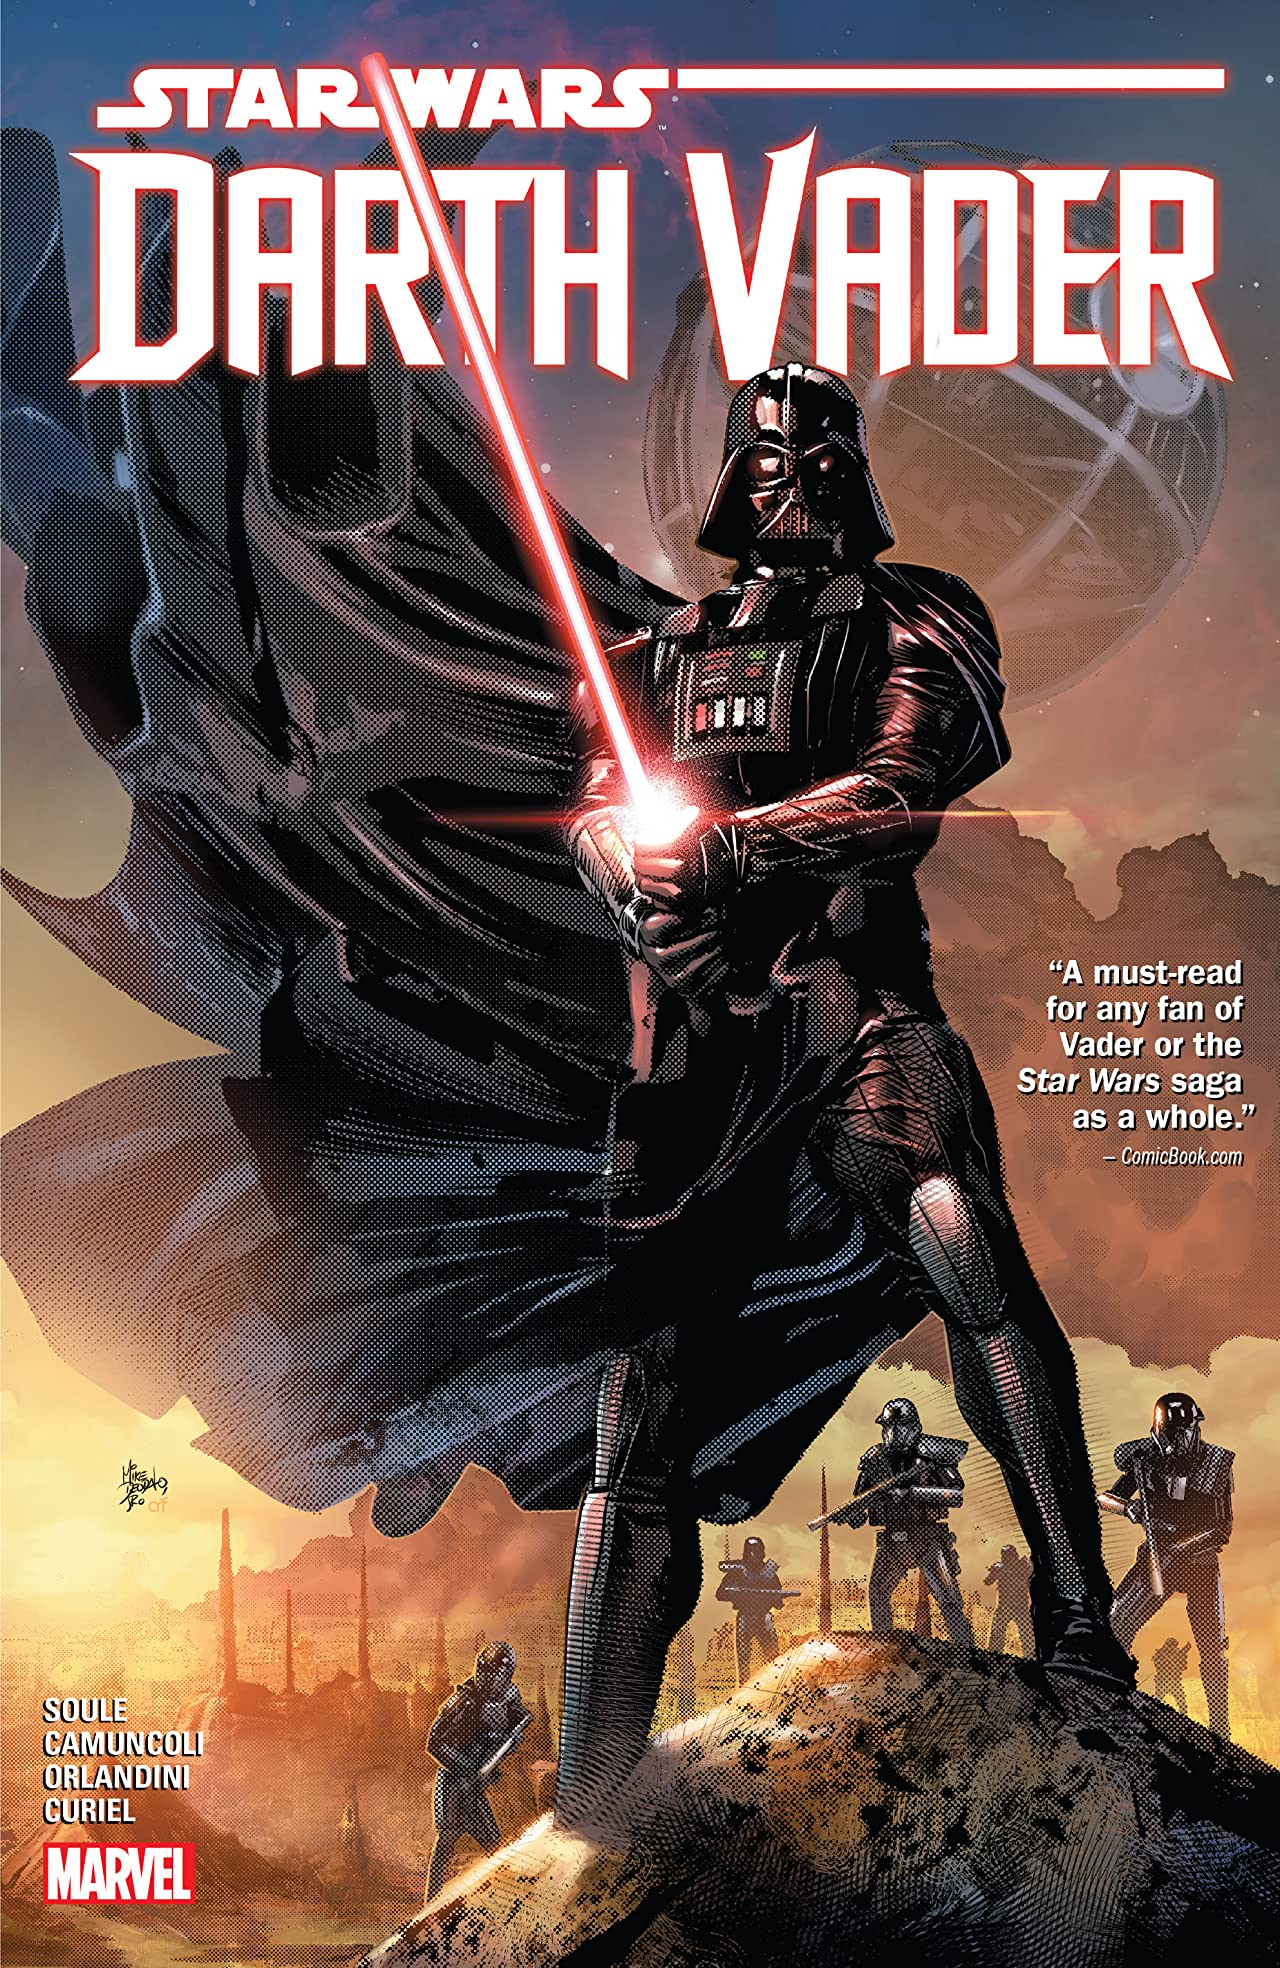 Star Wars Darth Vader Dark Lord Of The Sith Vol 2 Collection Eu Comics By Comixology